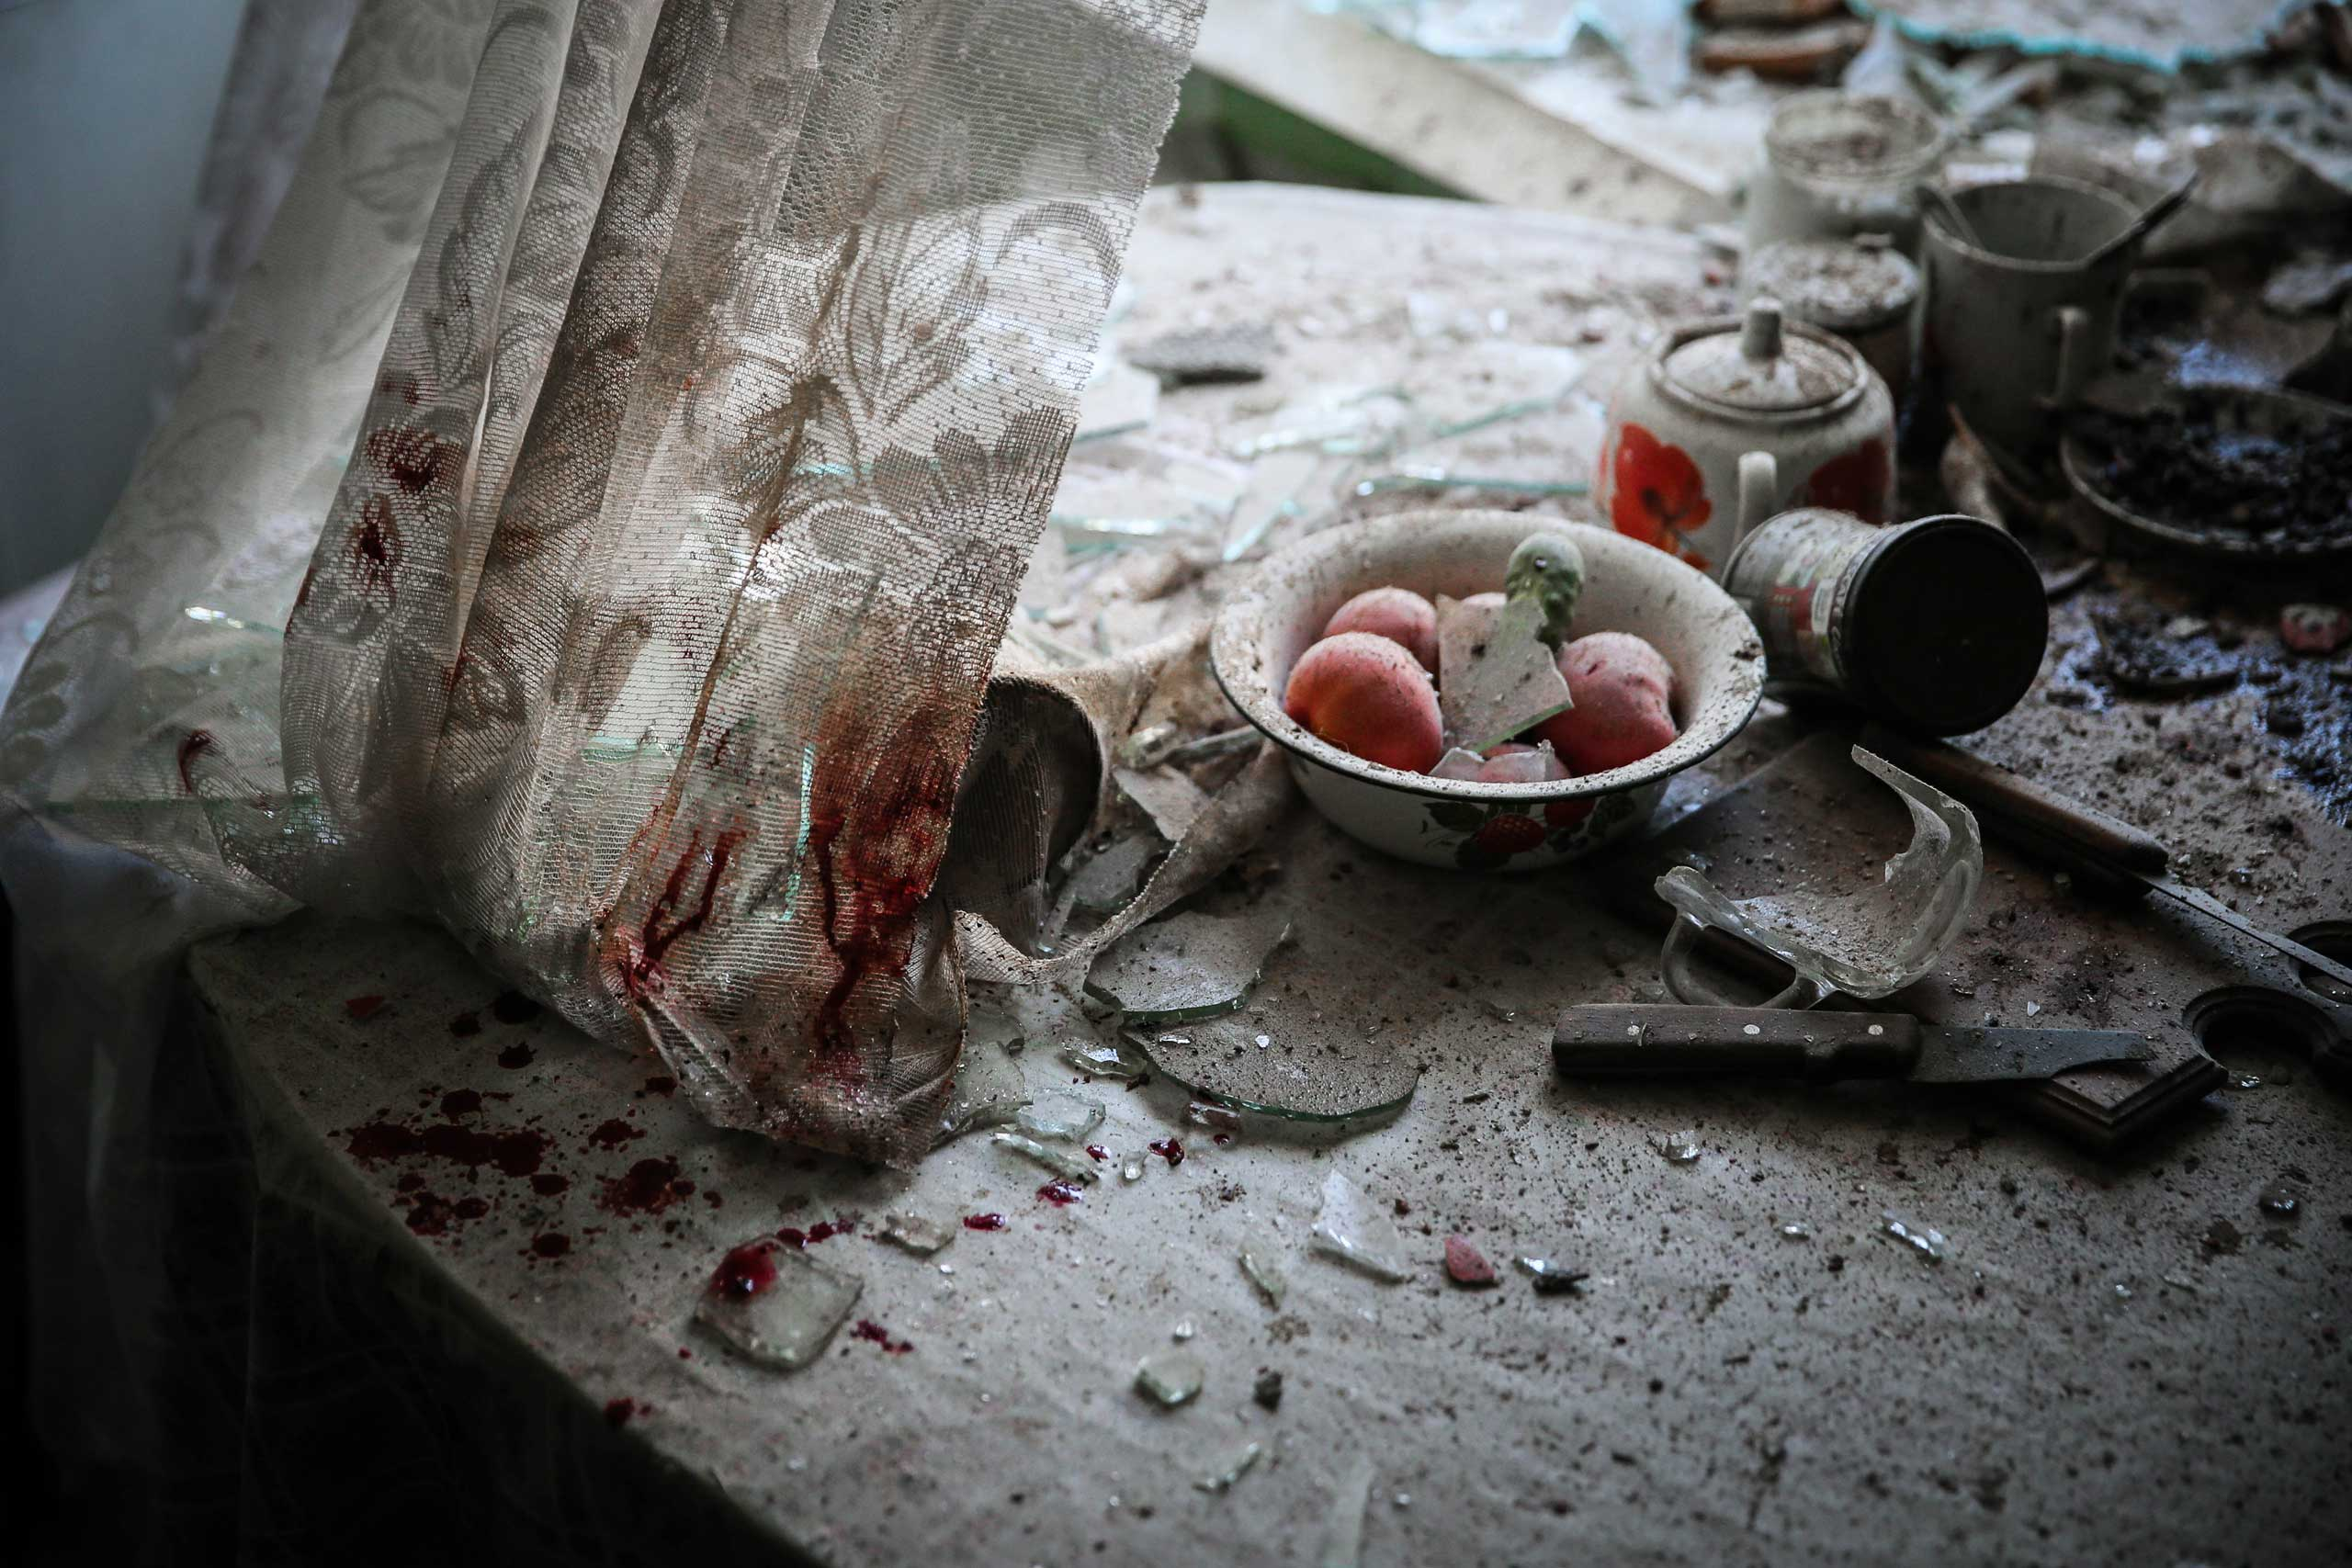 <b>First Prize General News Category, Singles</b>Damaged goods lie in a kitchen in downtown Donetsk, Ukraine.